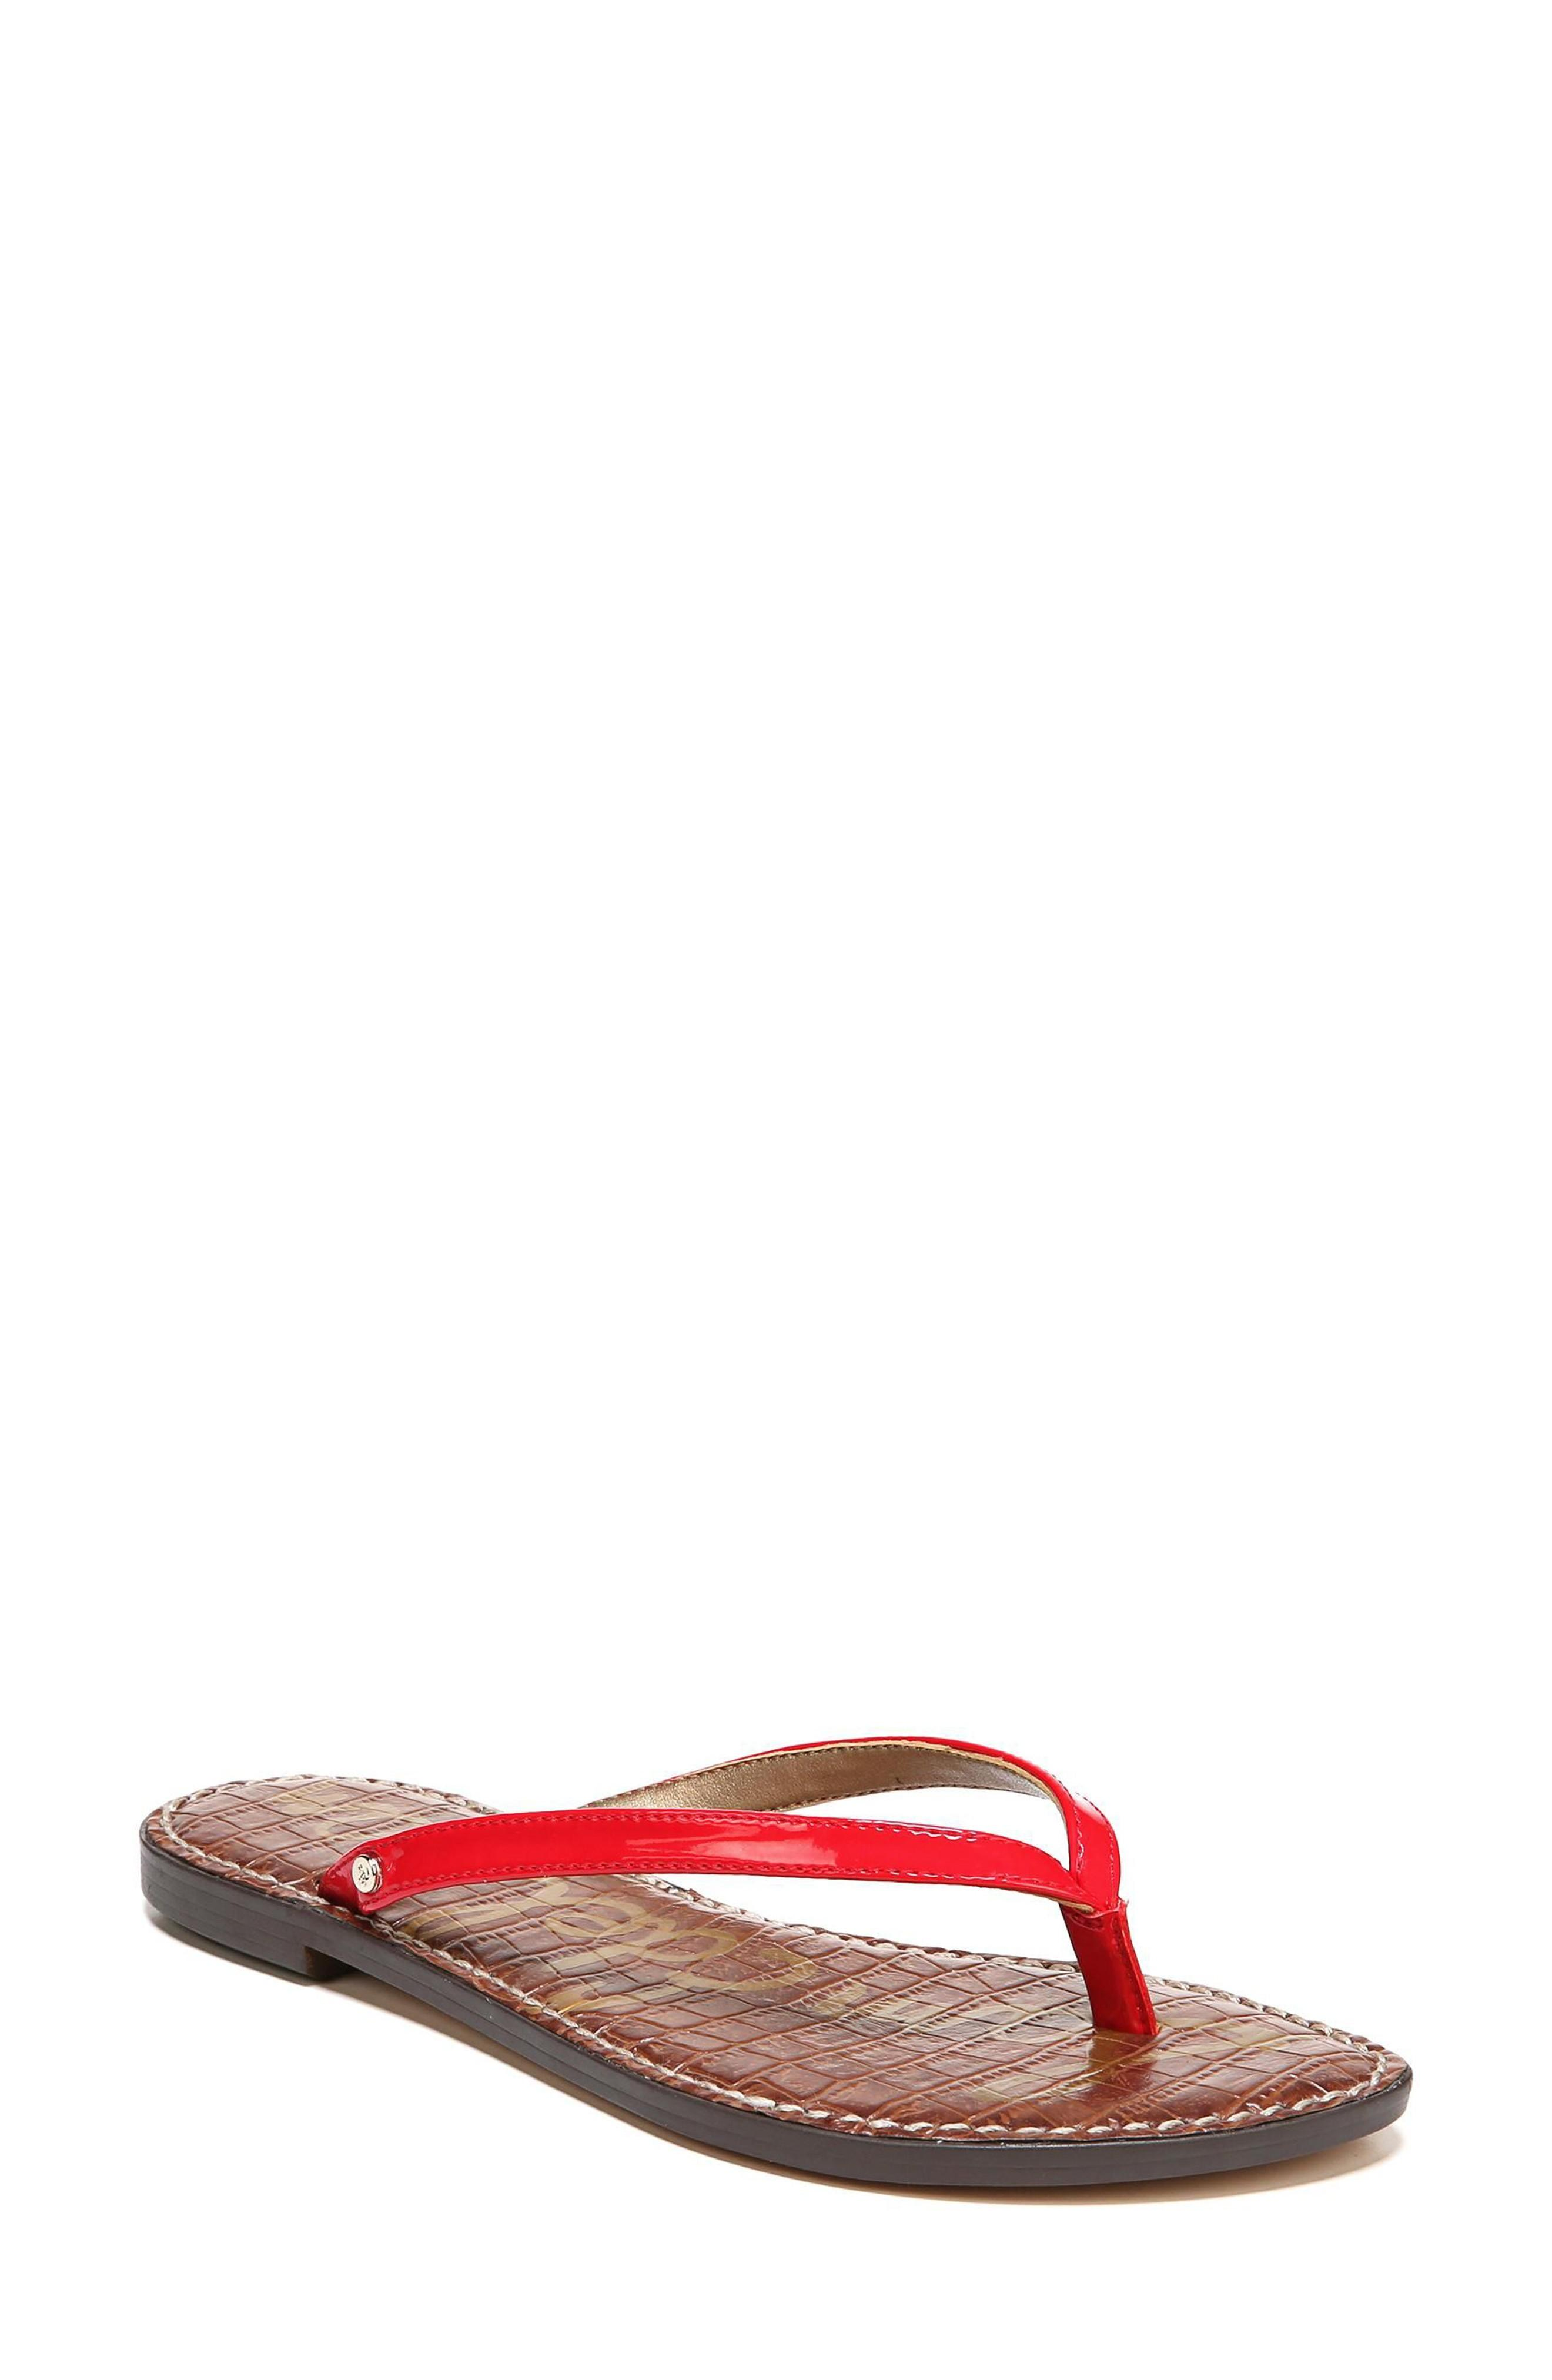 2adf2b91586b0a A breezy thong sandal is crafted from leather and furnished with a padded  footbed for comfortable wear. Style Name  Sam Edelman Gracie Sandal.